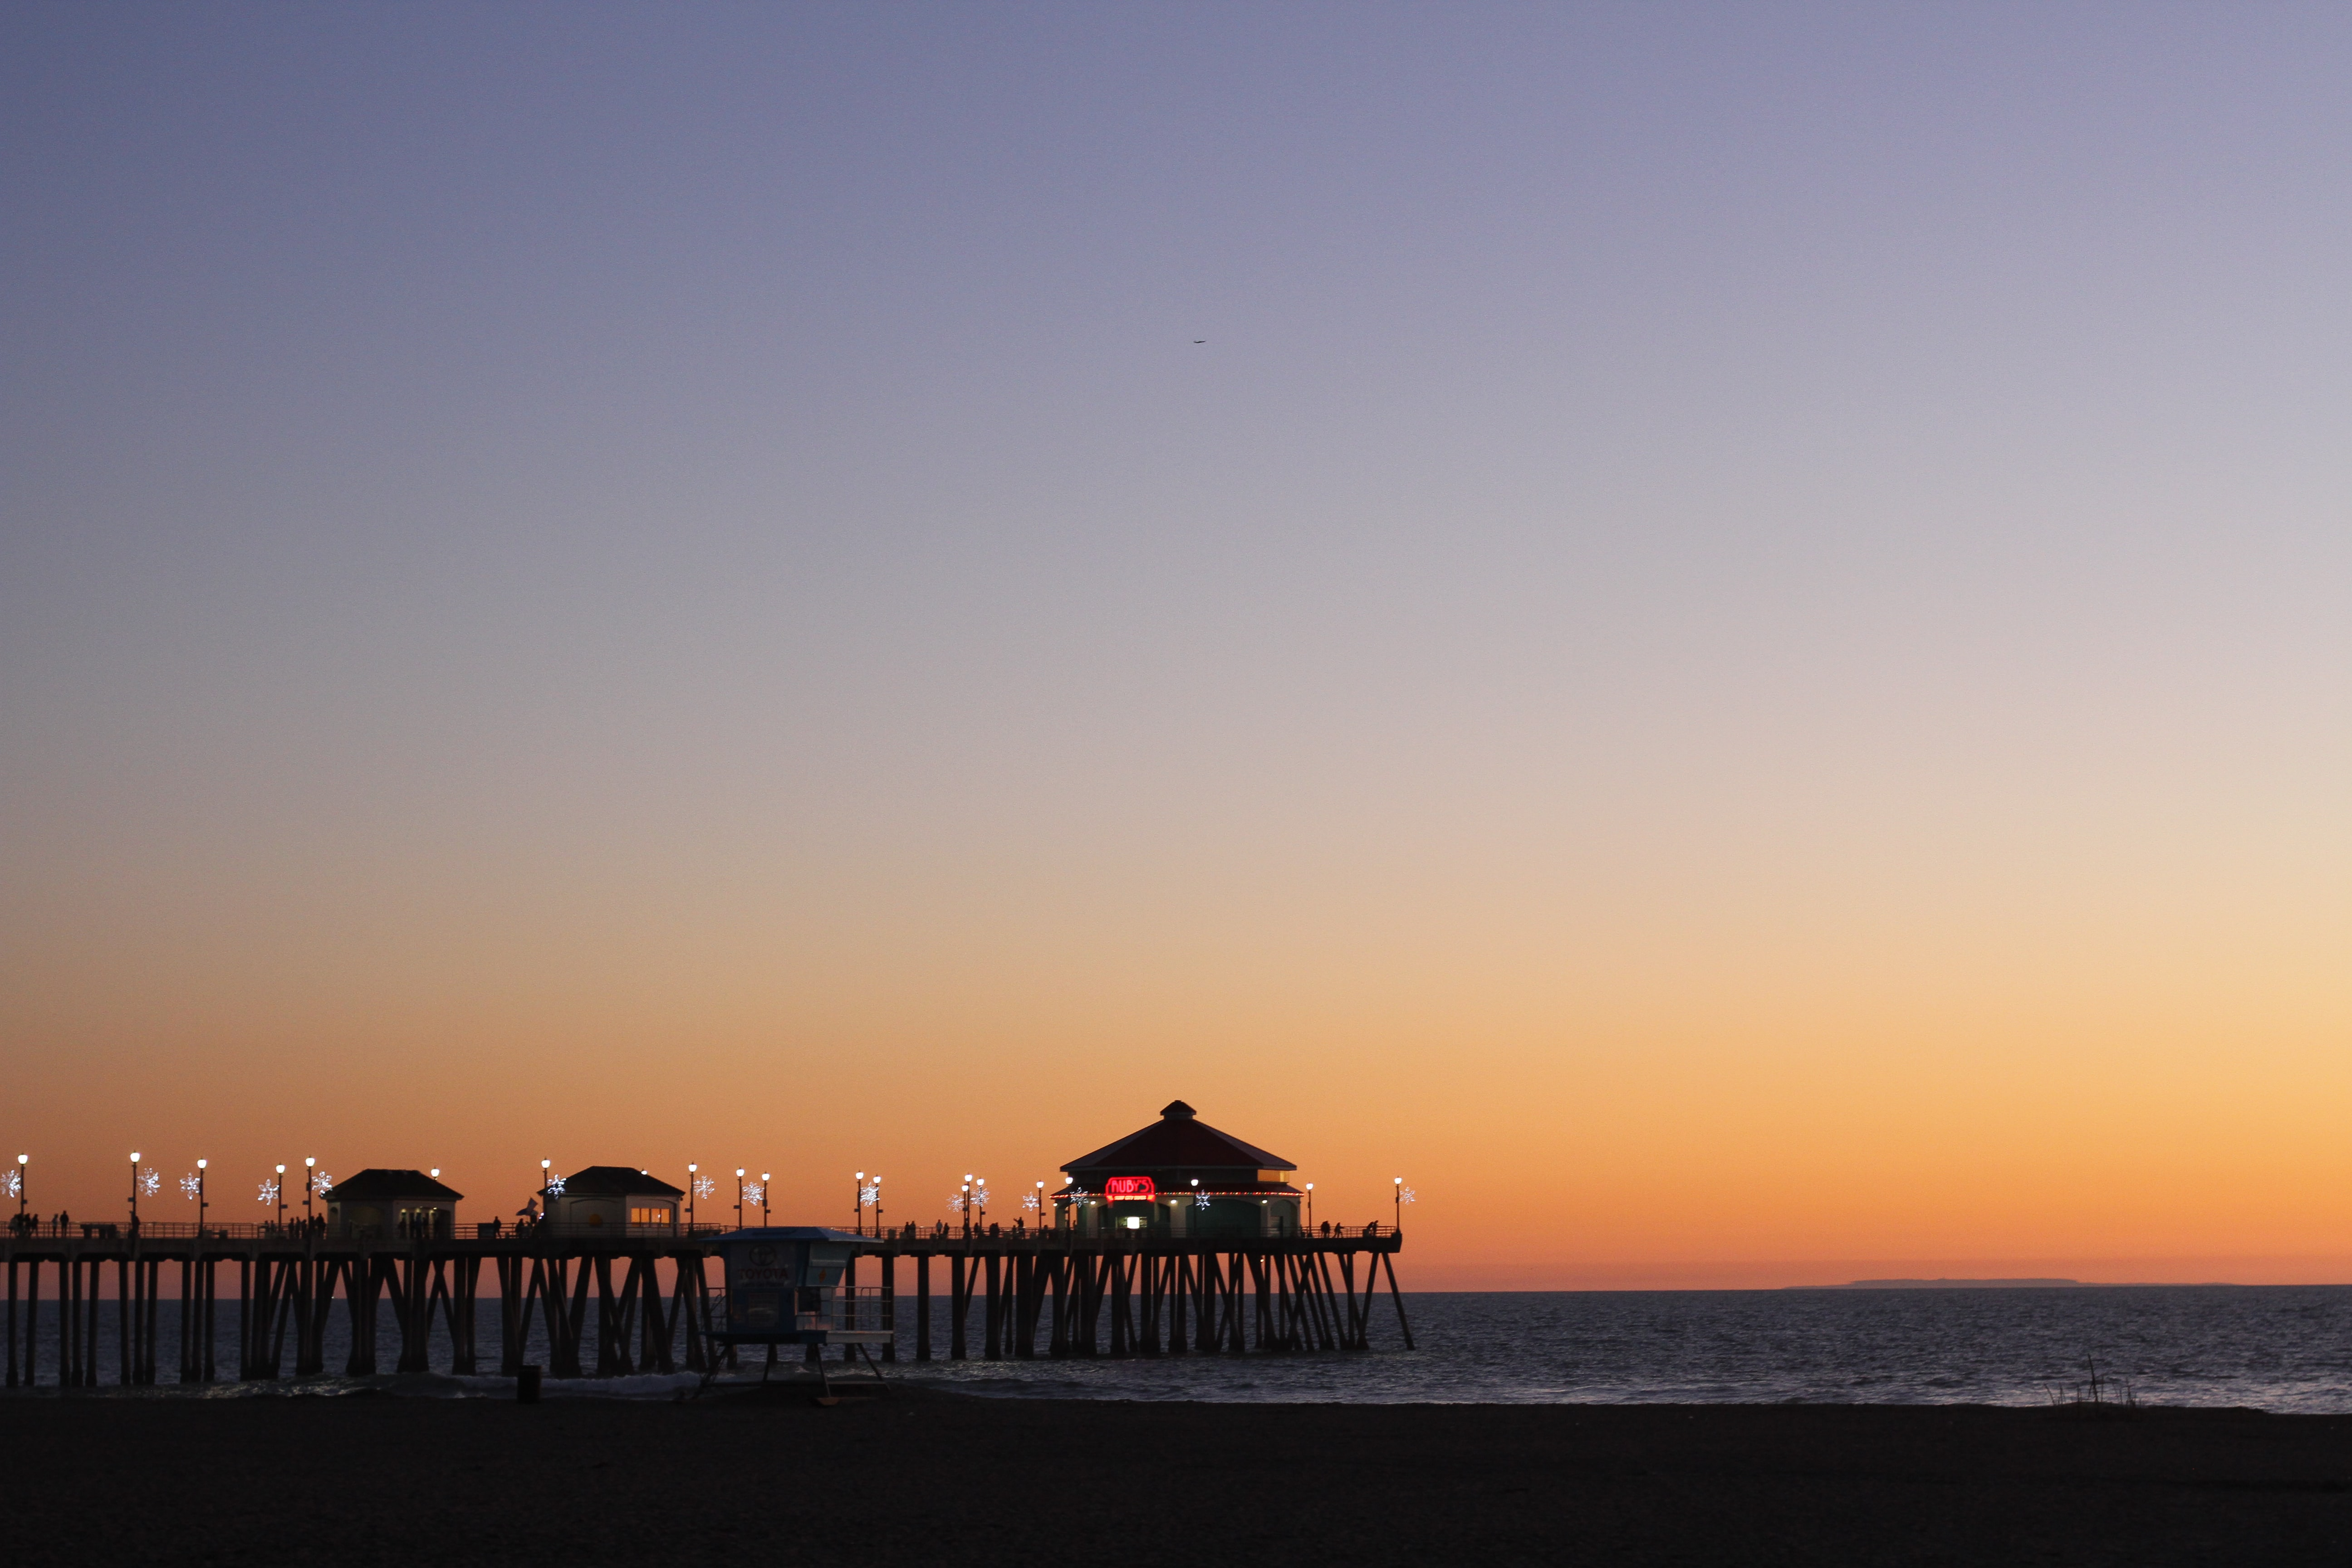 silhouette photo of boardwalk with cottage on body of water